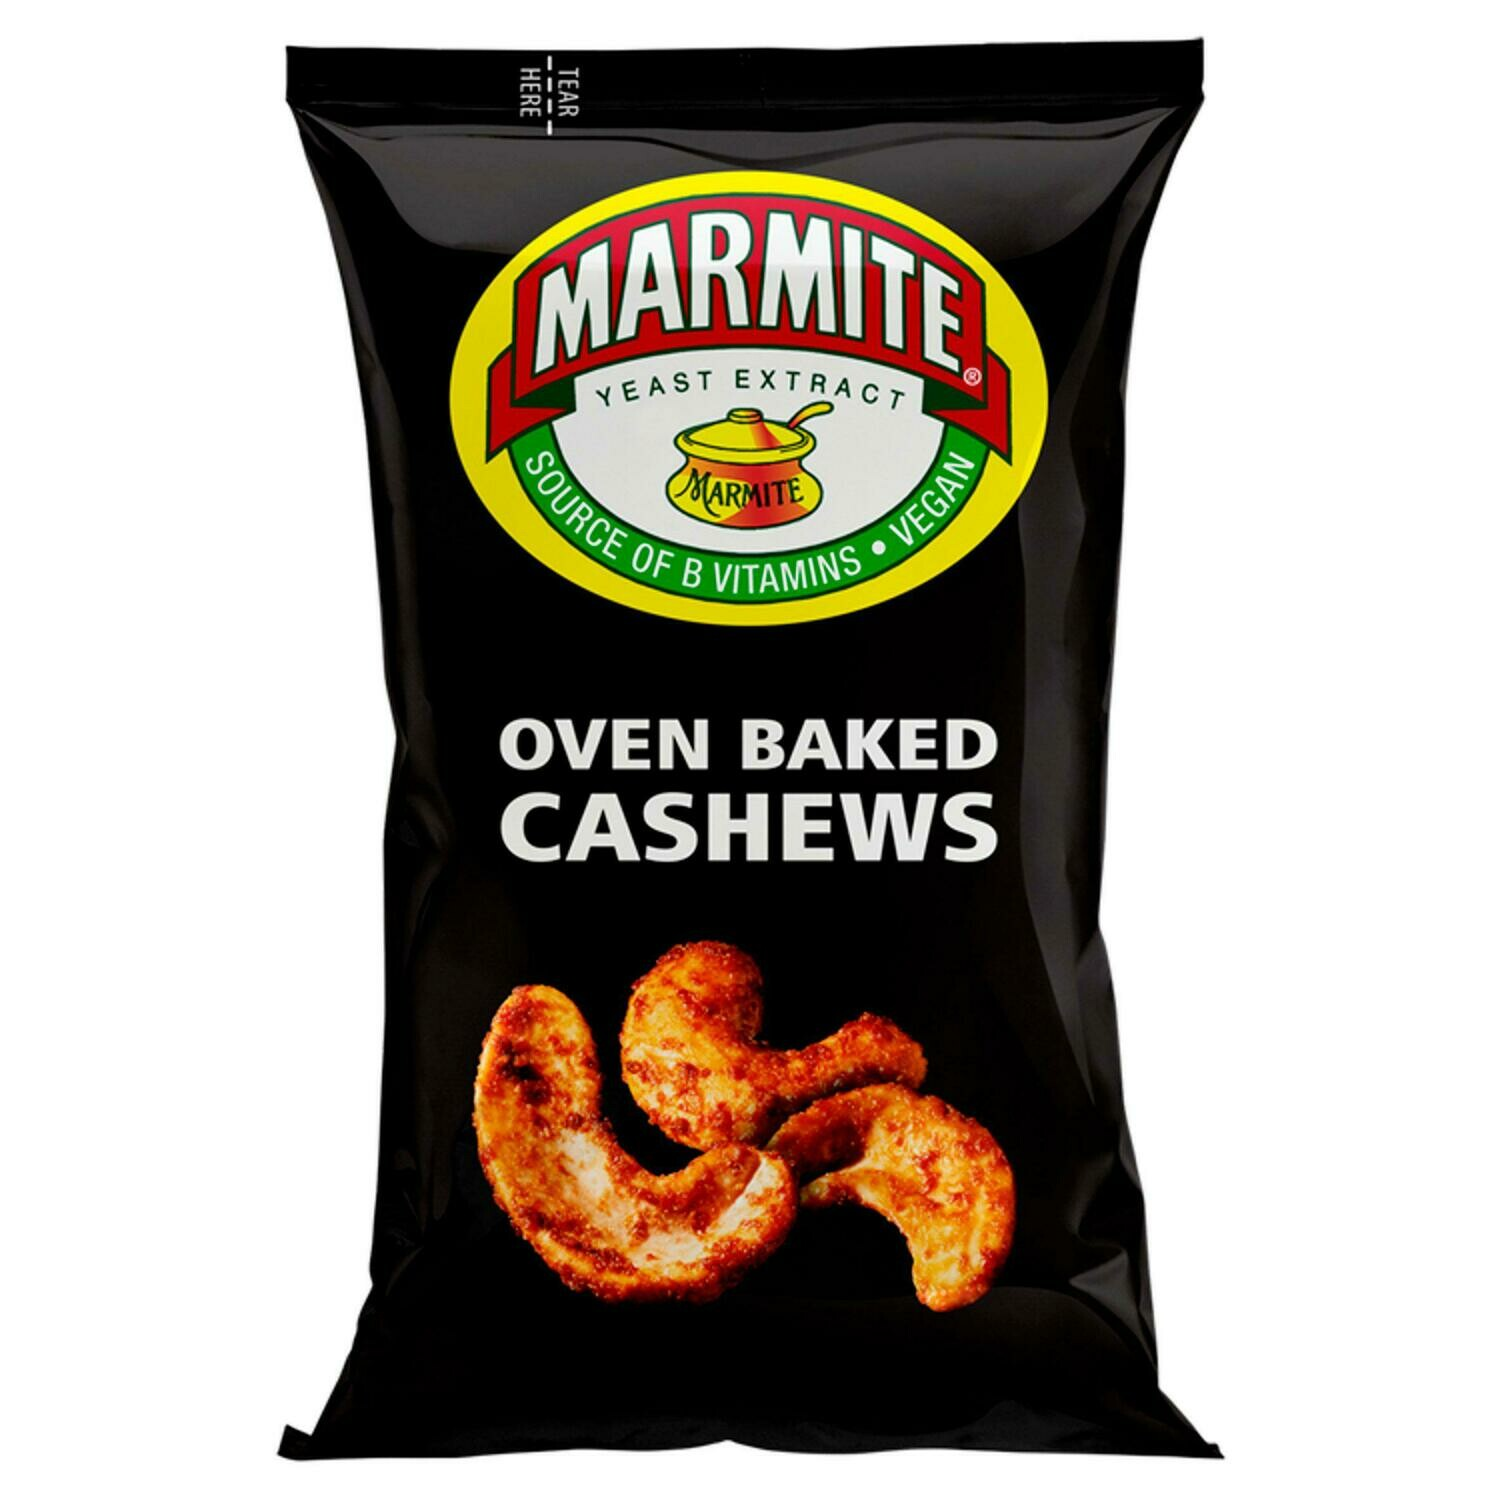 Marmite Oven Baked Cashew Nuts 90g Pack